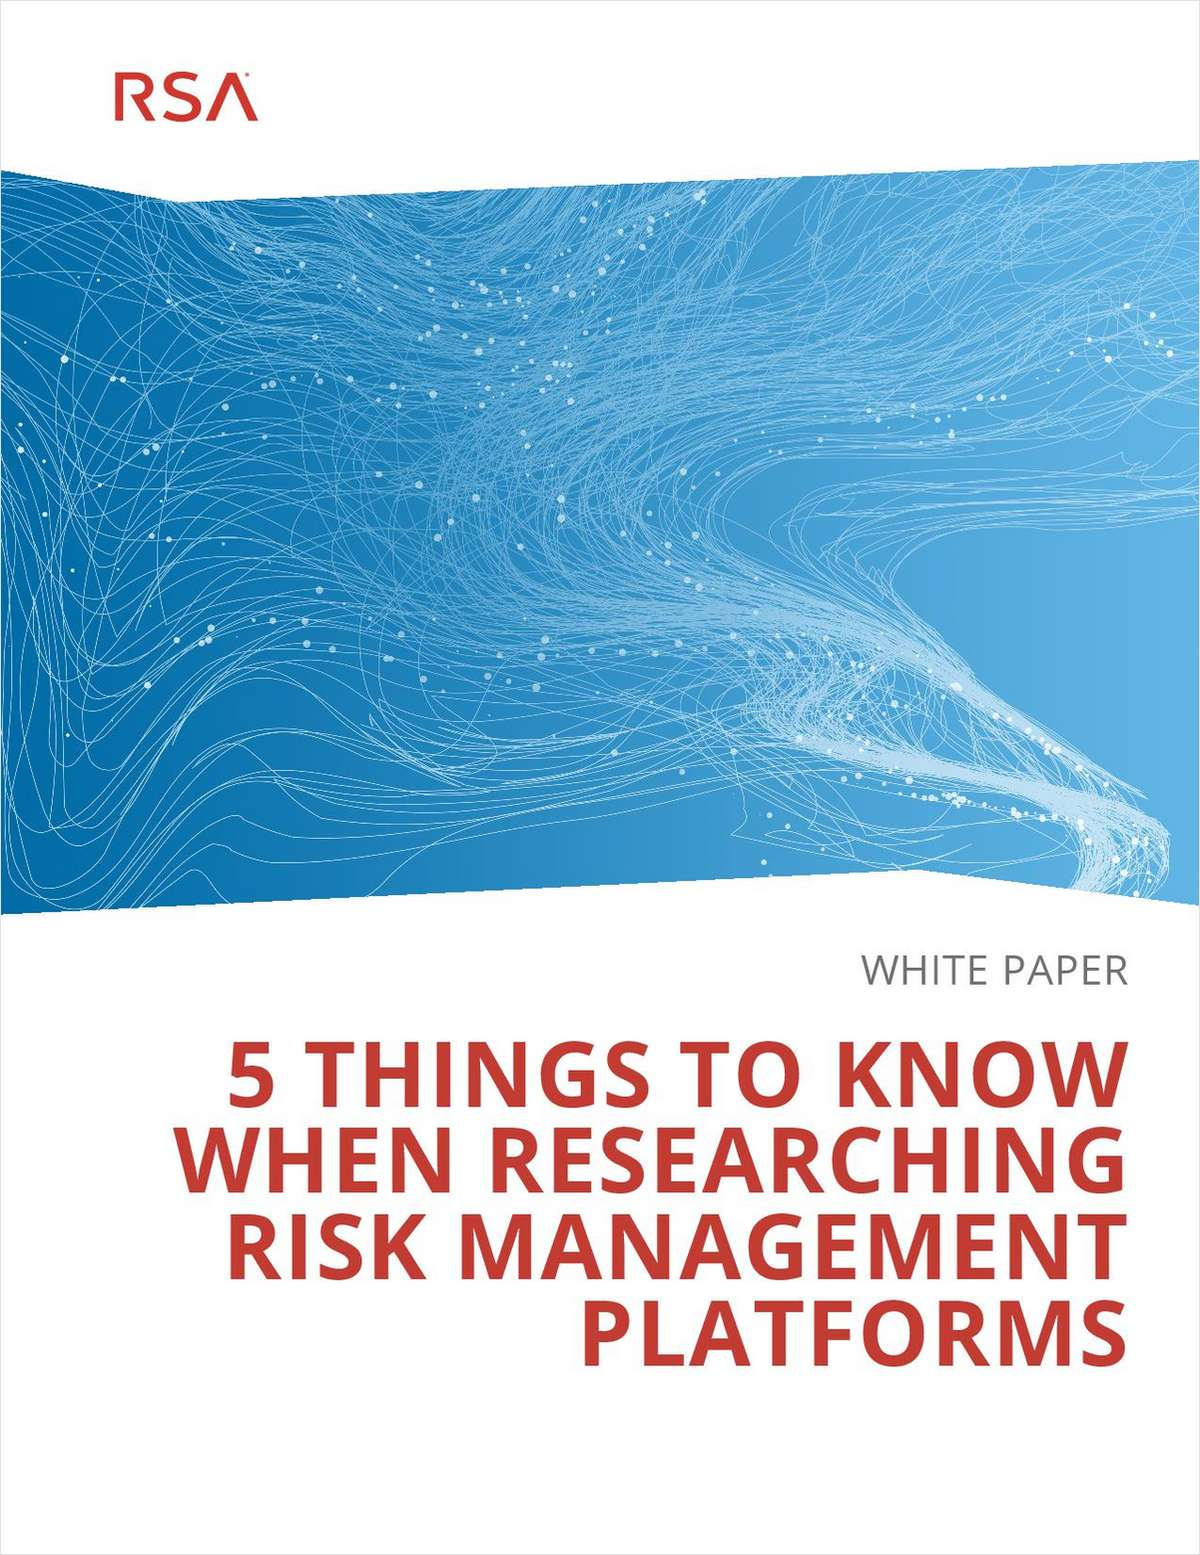 5 Things to Know When Researching Risk Management Platforms